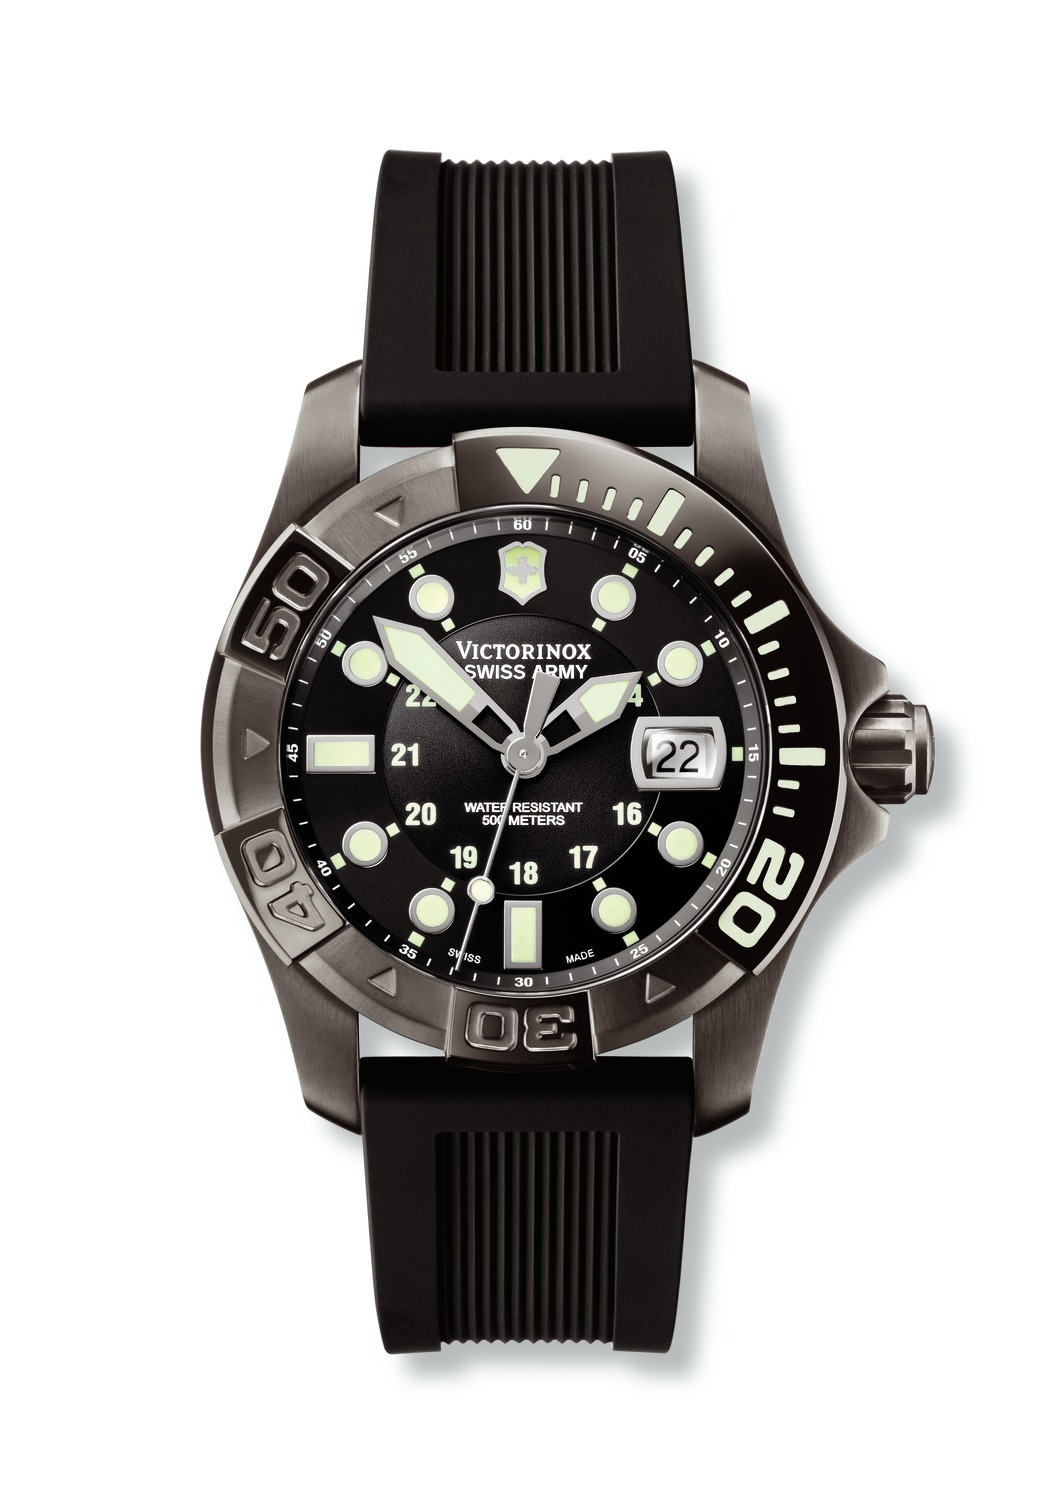 часы Victorinox Swiss Army Dive Master 500 Black Ice